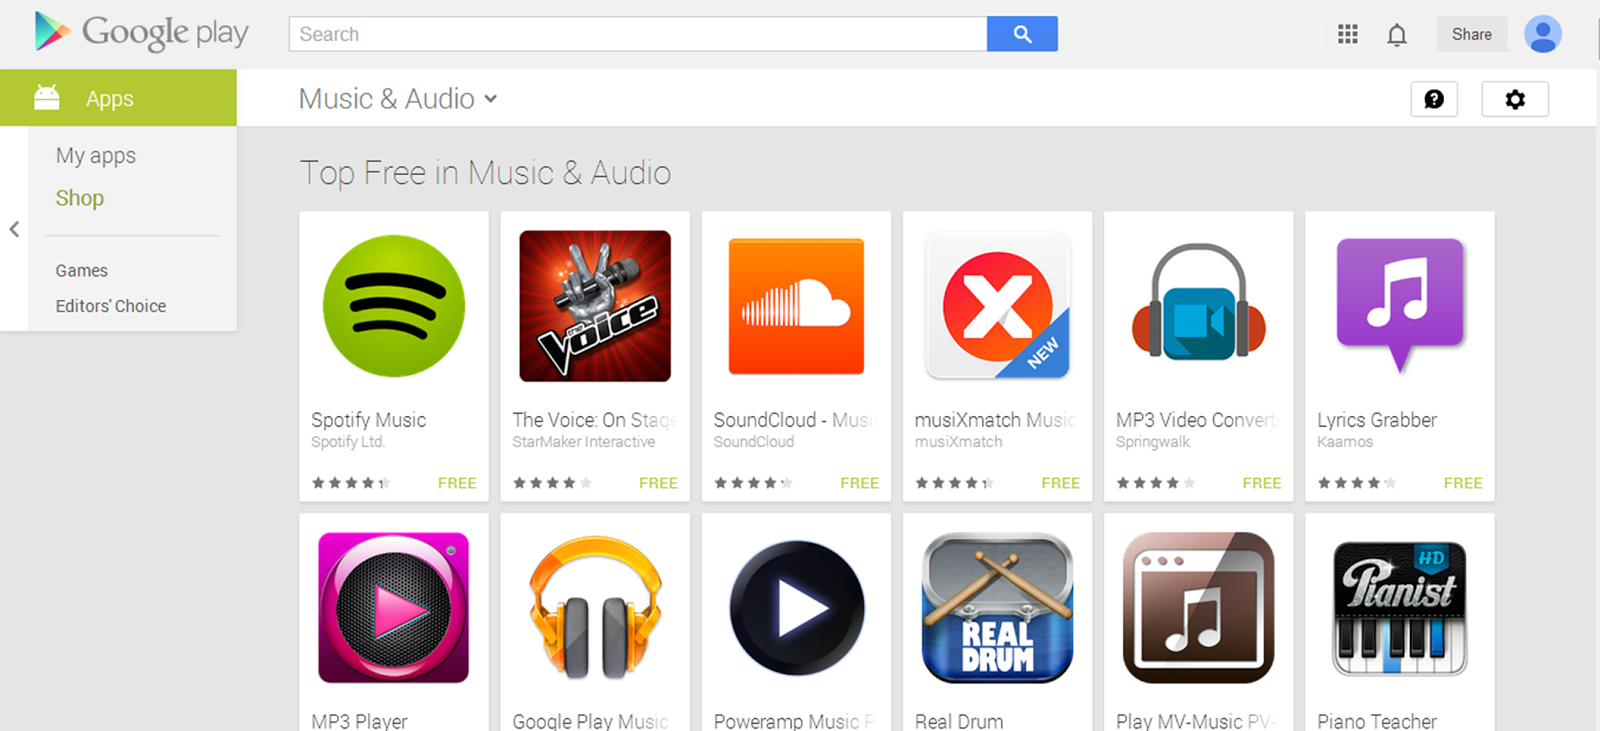 Spotify - Google Play